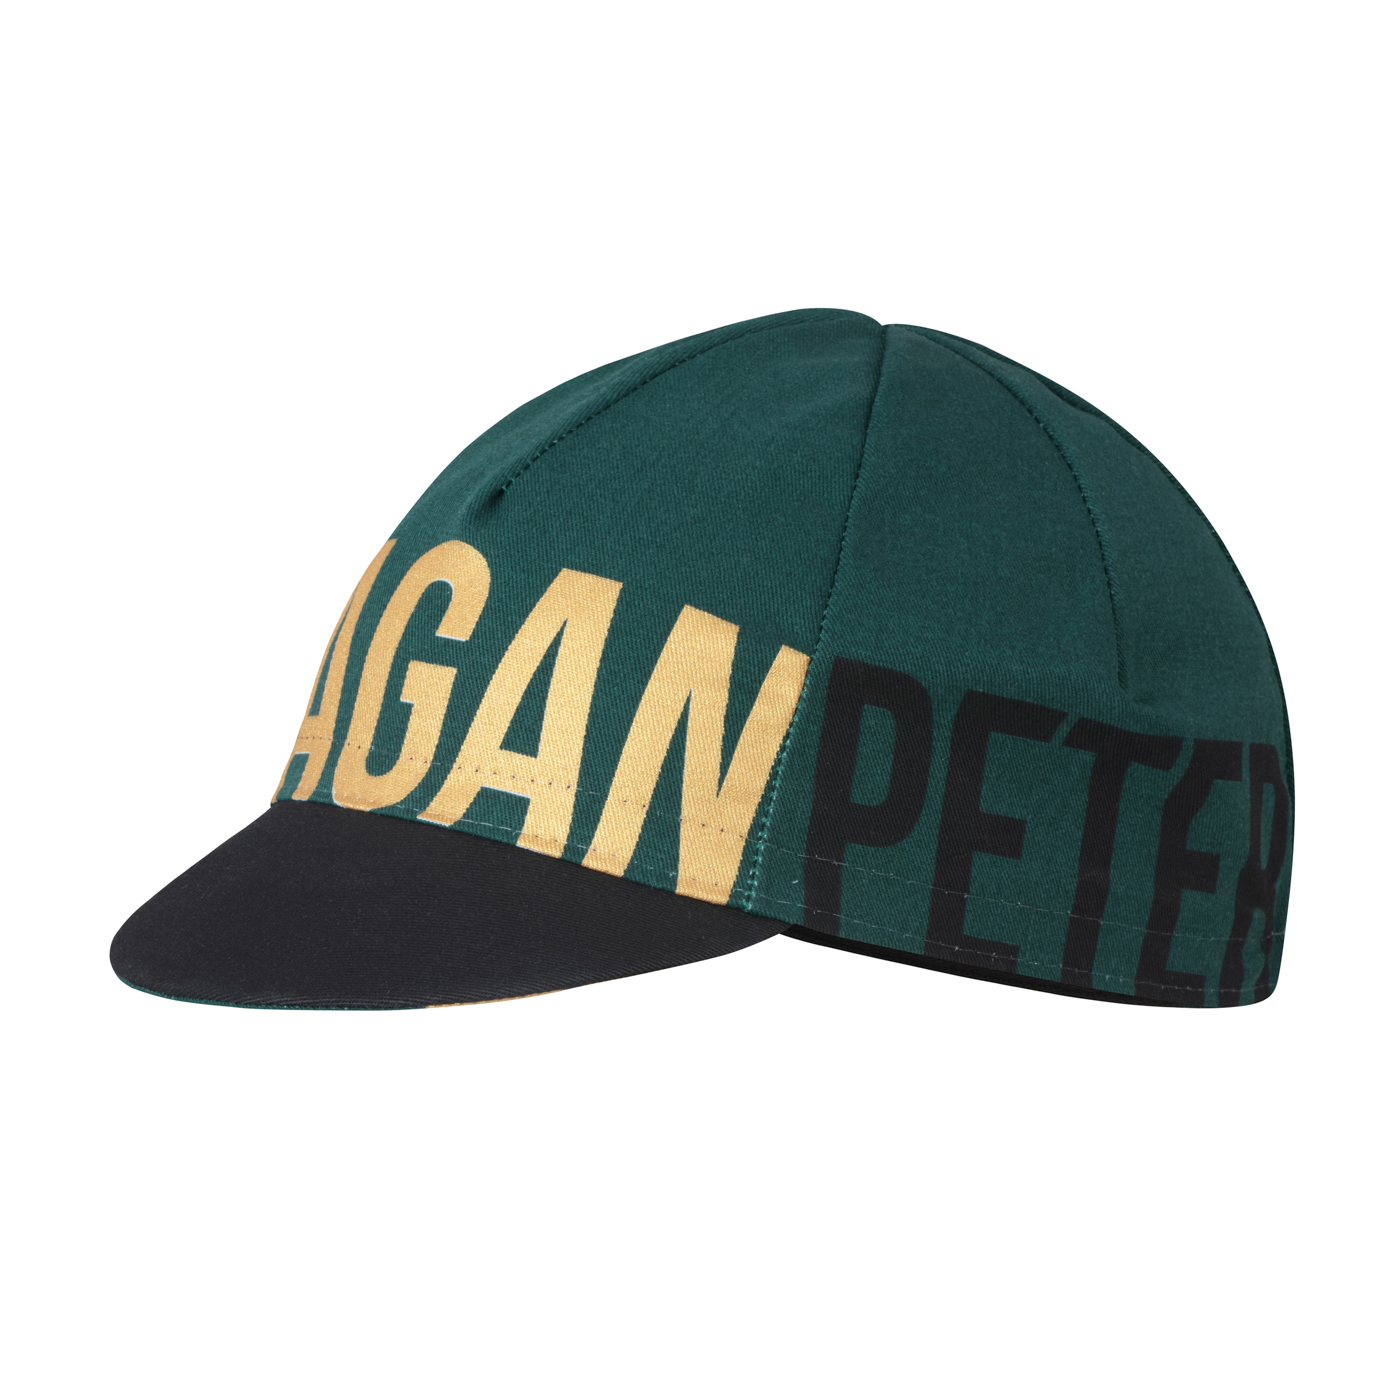 SAGAN ONE CYCLING CAP